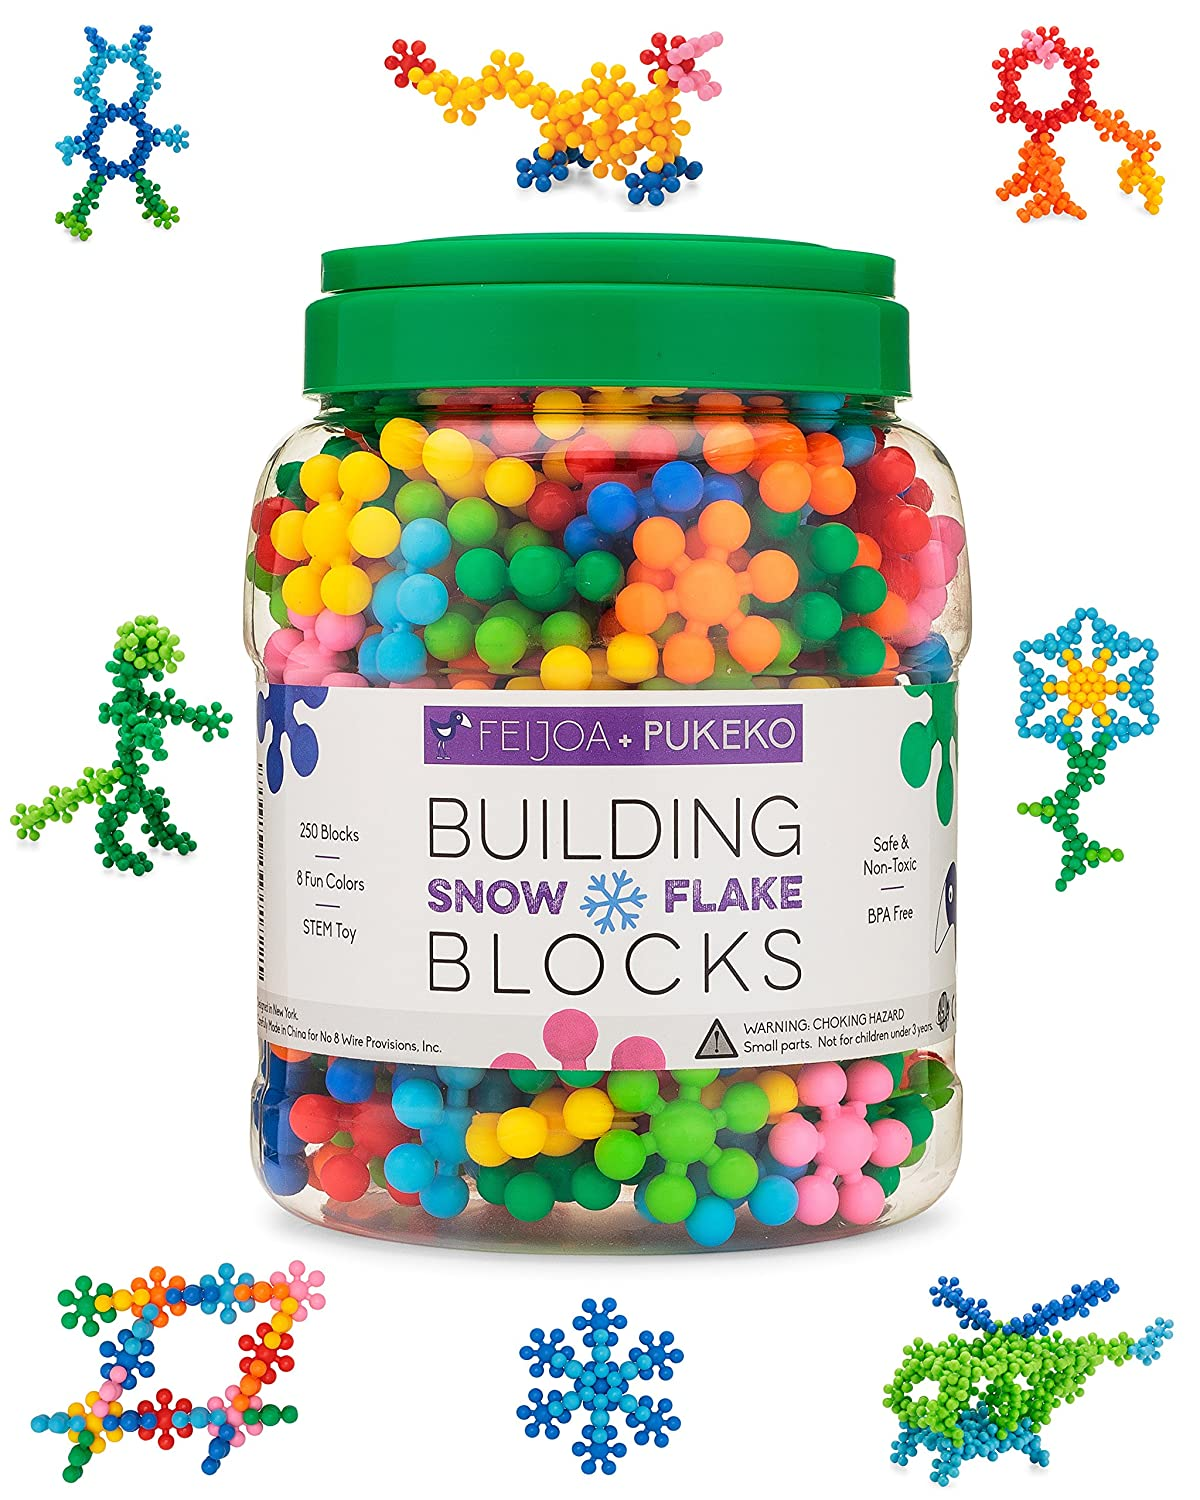 Snowflake Building Blocks Kids STEM Educational Toys - 250 Piece Mega Set of Plastic Interlocking Discs for Preschool, Toddler and School Boys and Girls - Creative & Development Toy - Feijoa + Pukeko Review